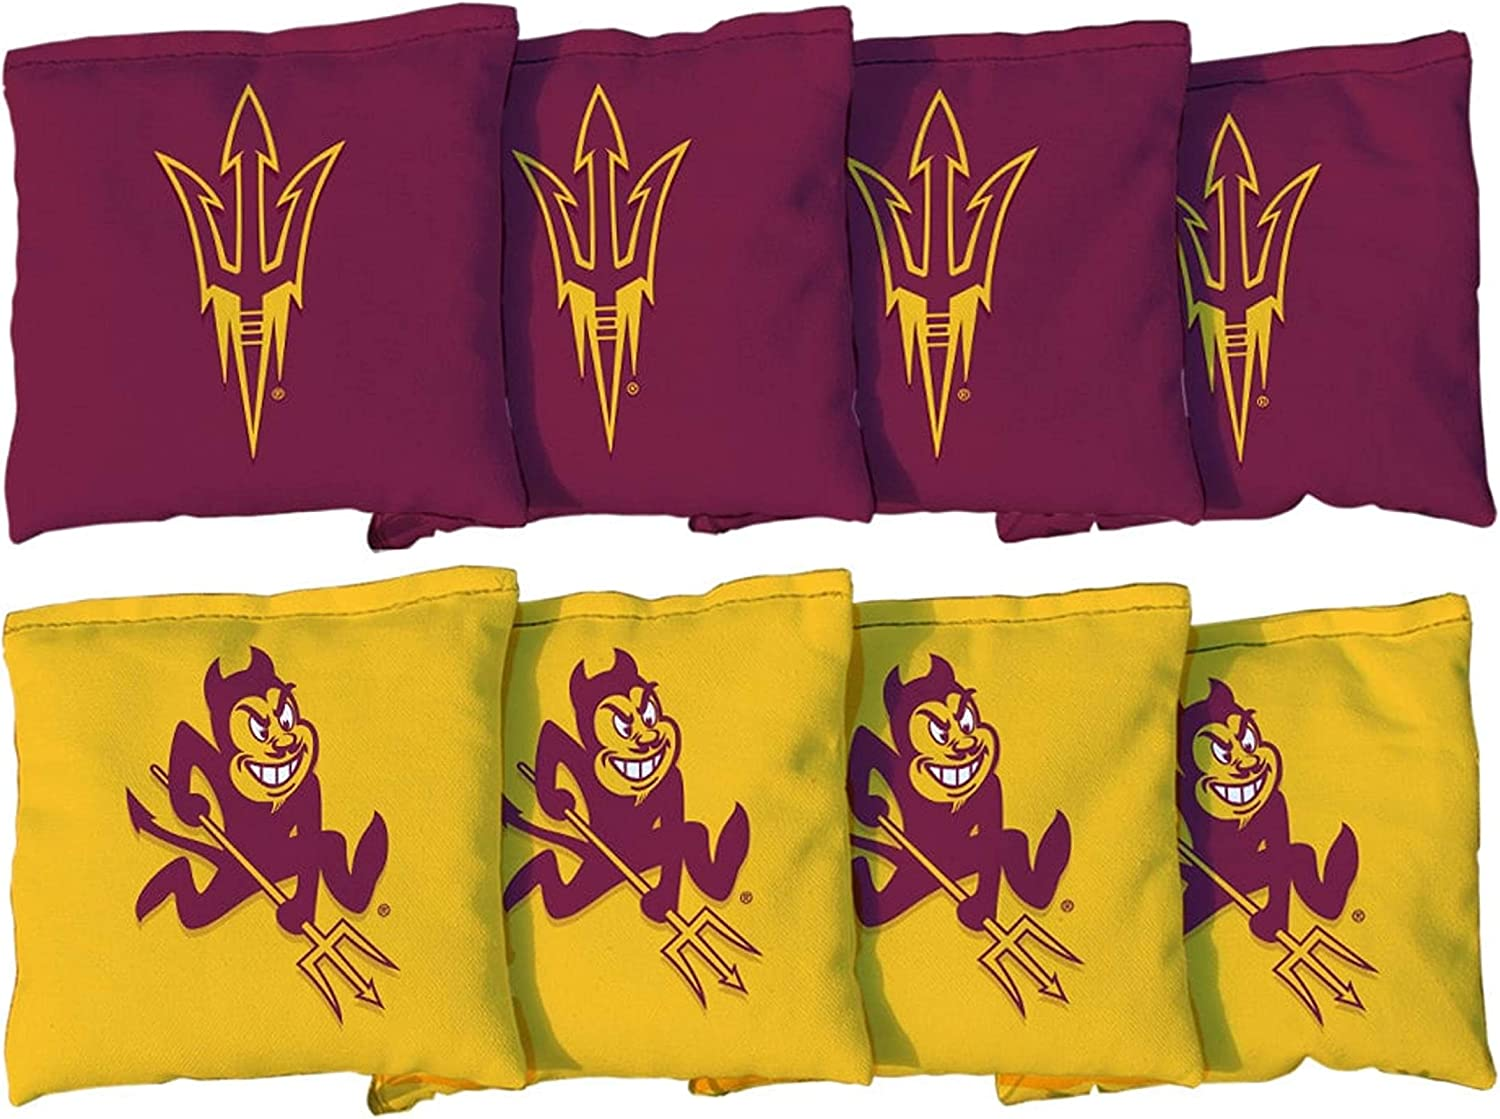 Victory Tailgate NCAA Collegiate Regulation Cornhole Game Bag Set (8 Bags Included, Corn-Filled) - Arizona State University Sun Devils 818kdemHr9L